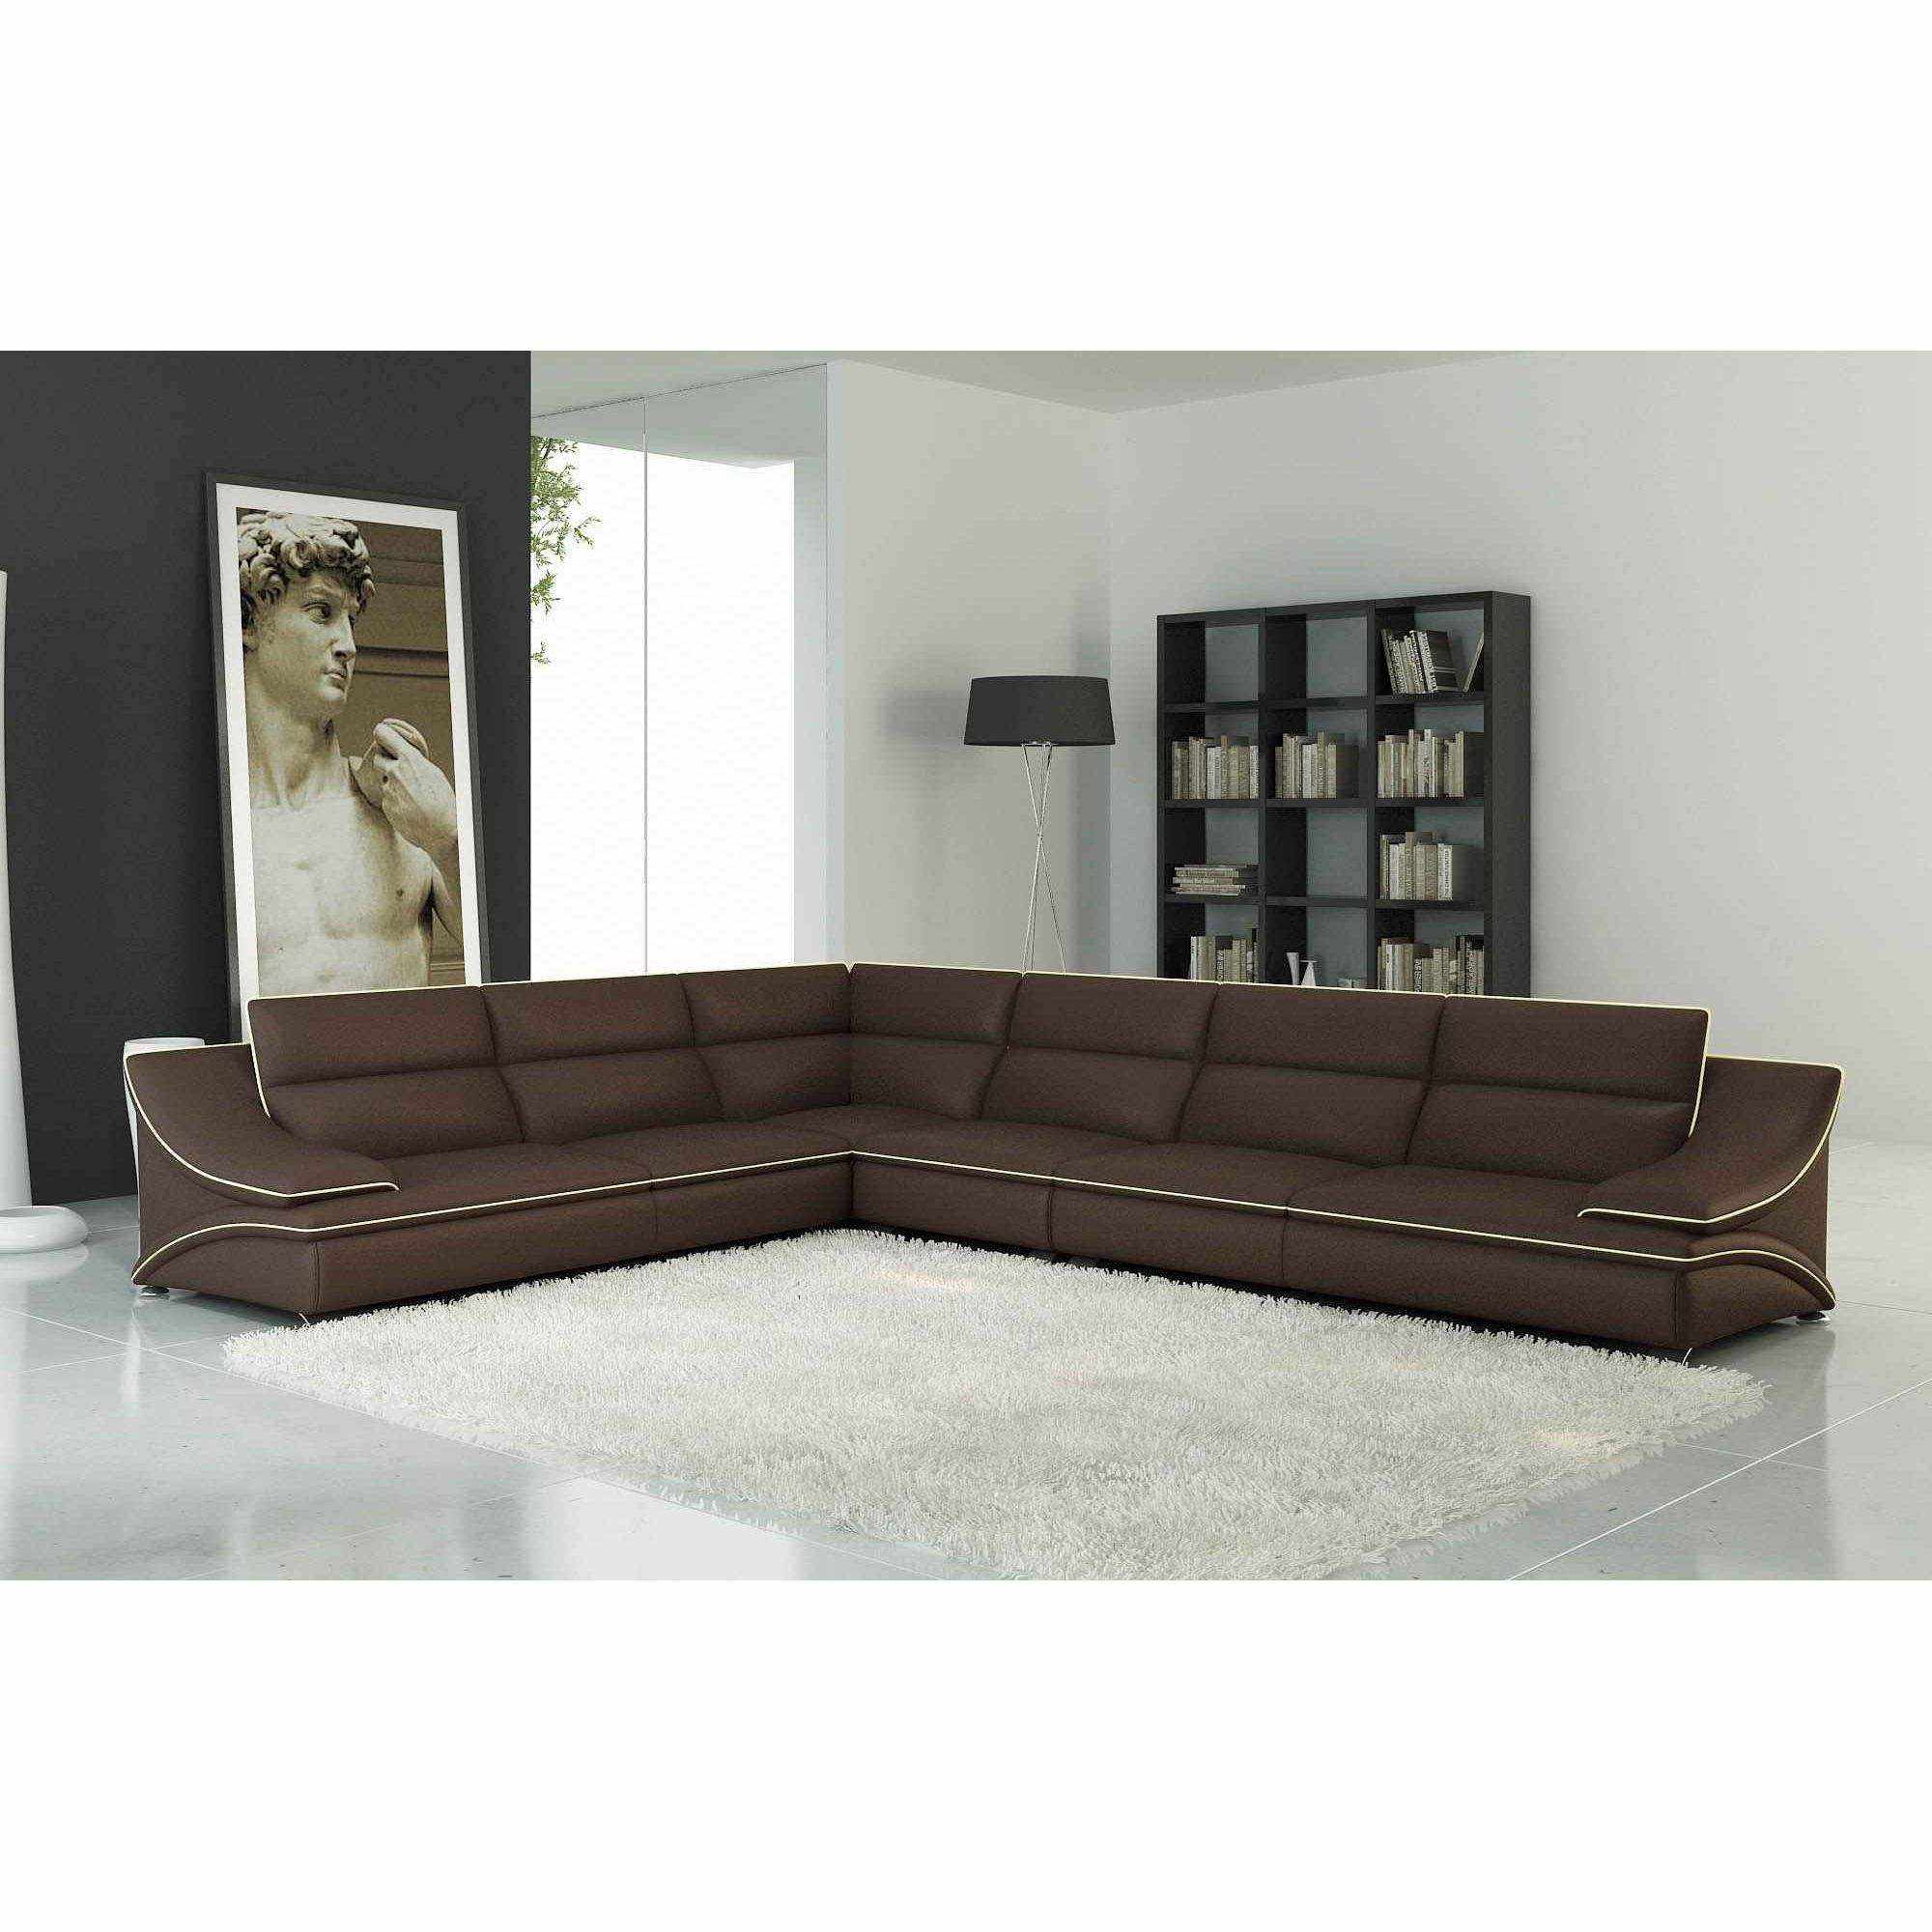 deco in paris 4 canape d angle gauche cuir design marron et beige roxa roxa gauche marron beige. Black Bedroom Furniture Sets. Home Design Ideas